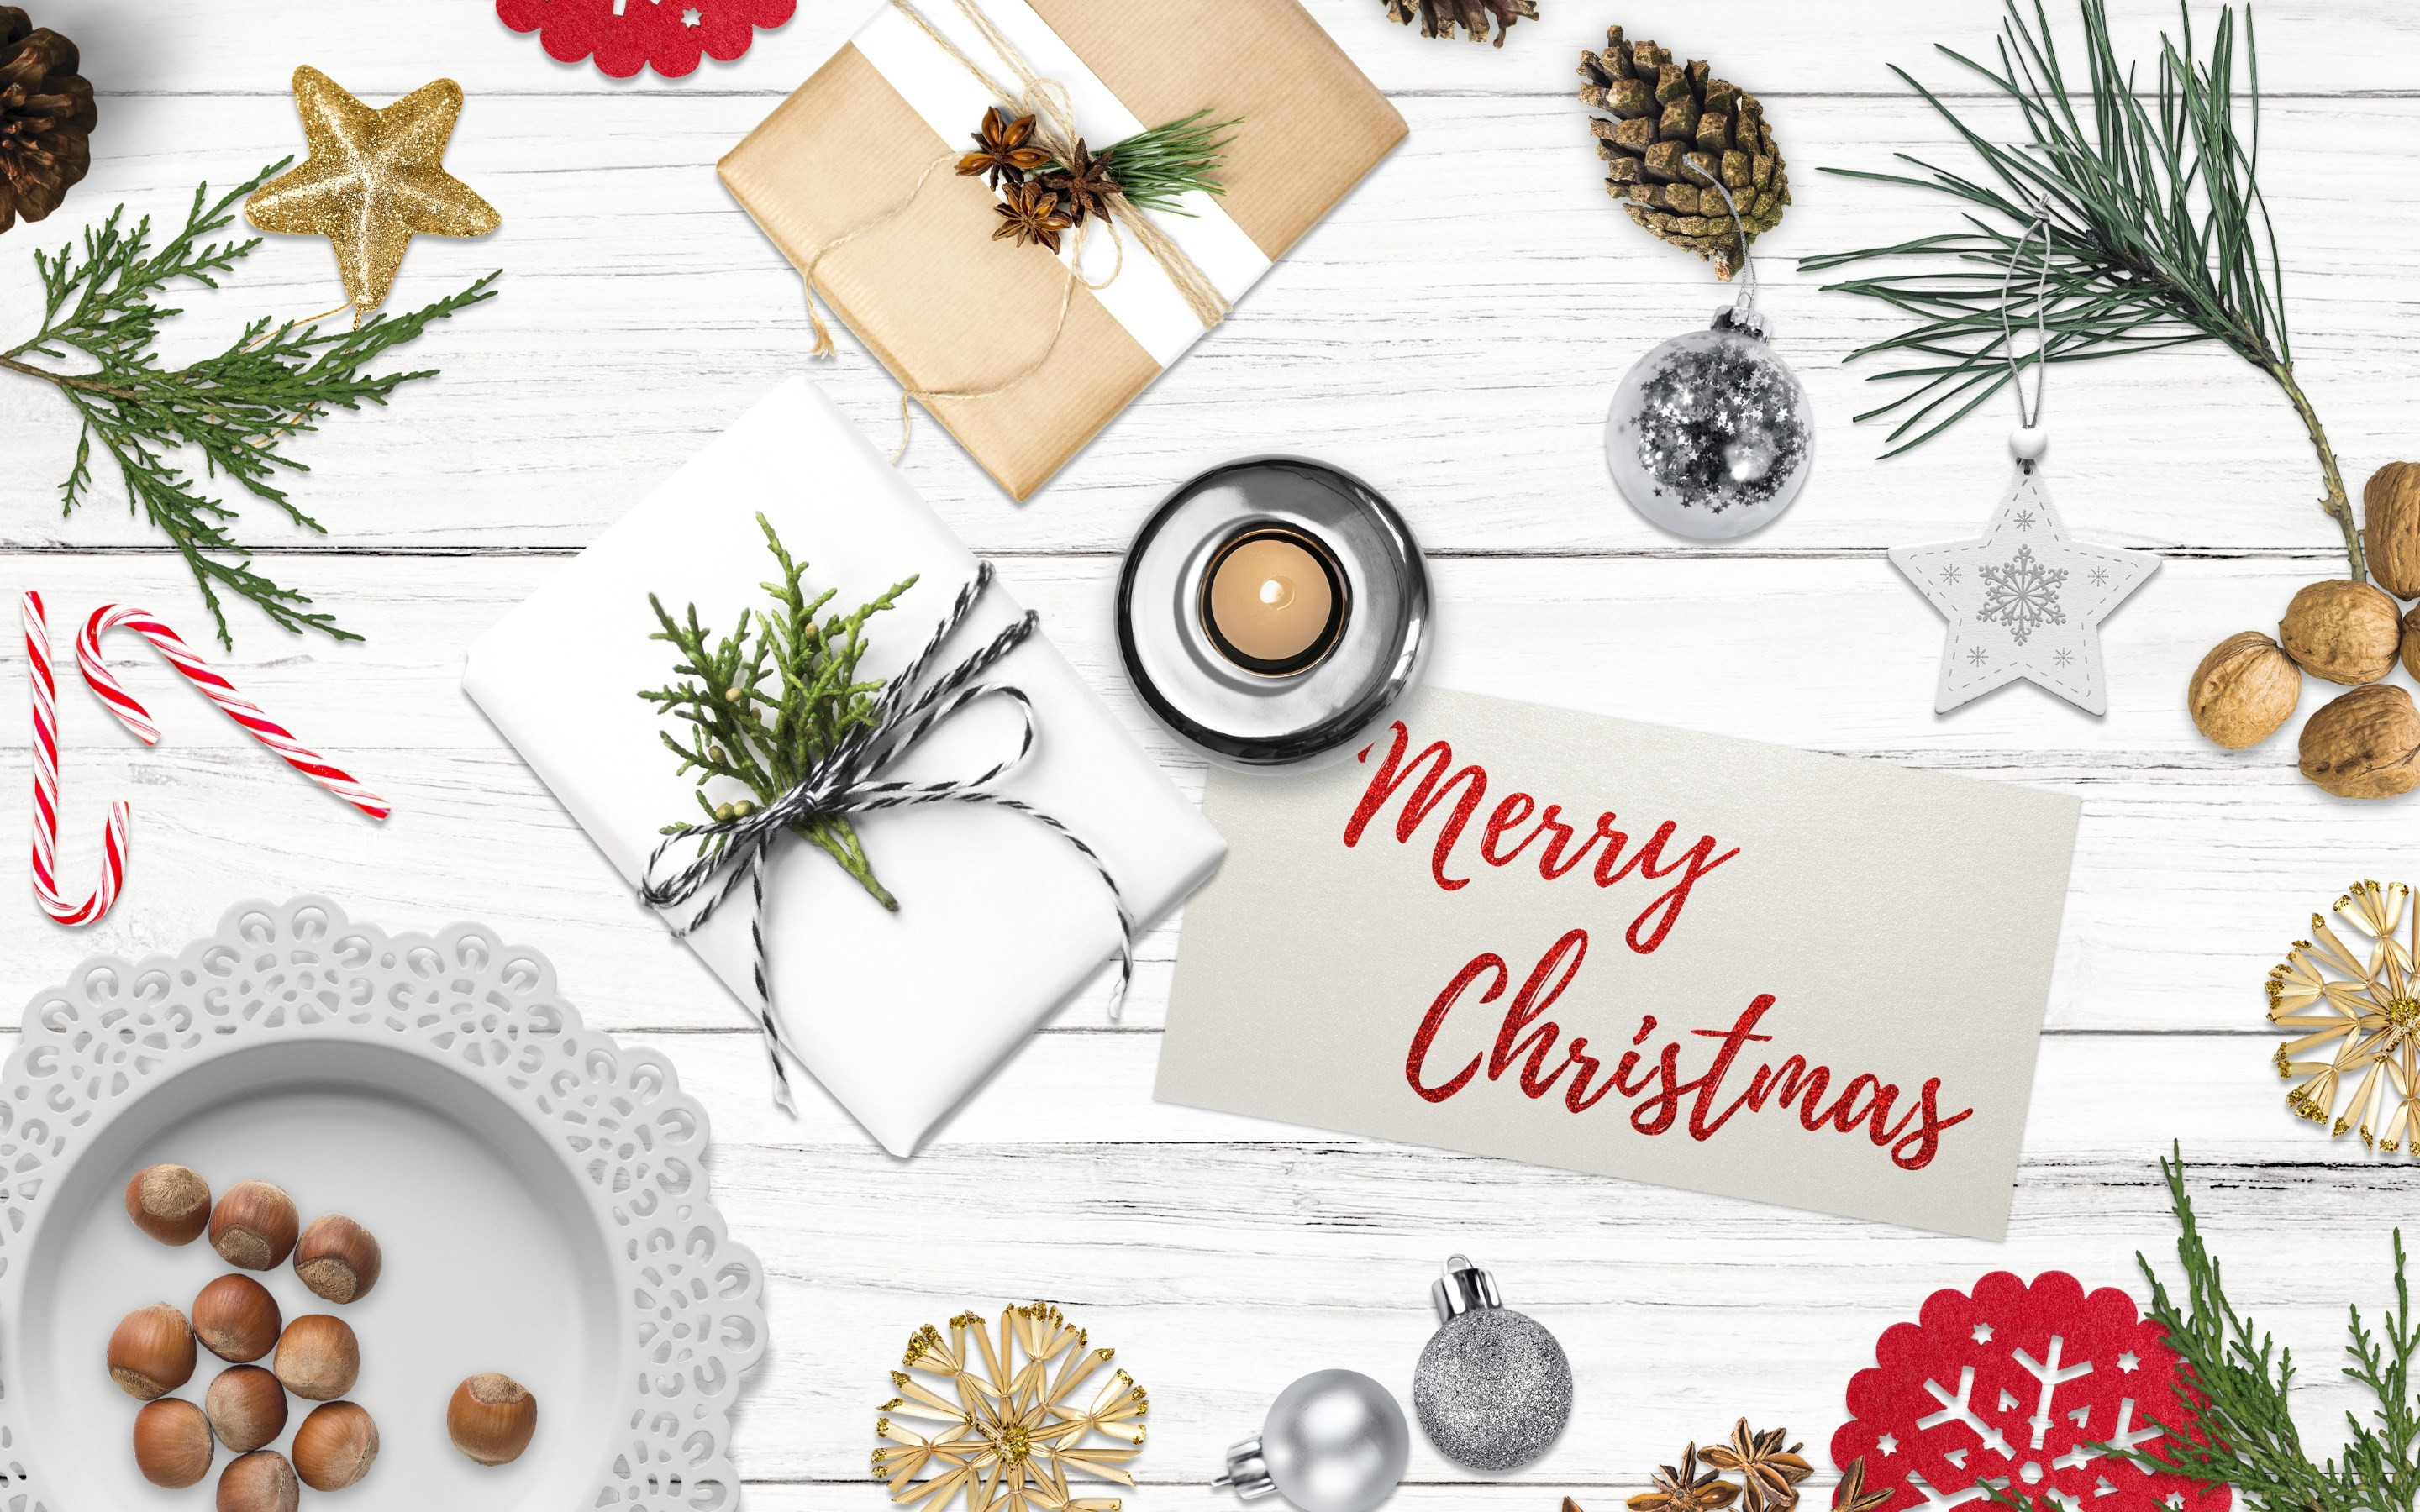 Christmas Images 2019 Download.Download Wallpaper Merry Christmas 2019 2880x1800